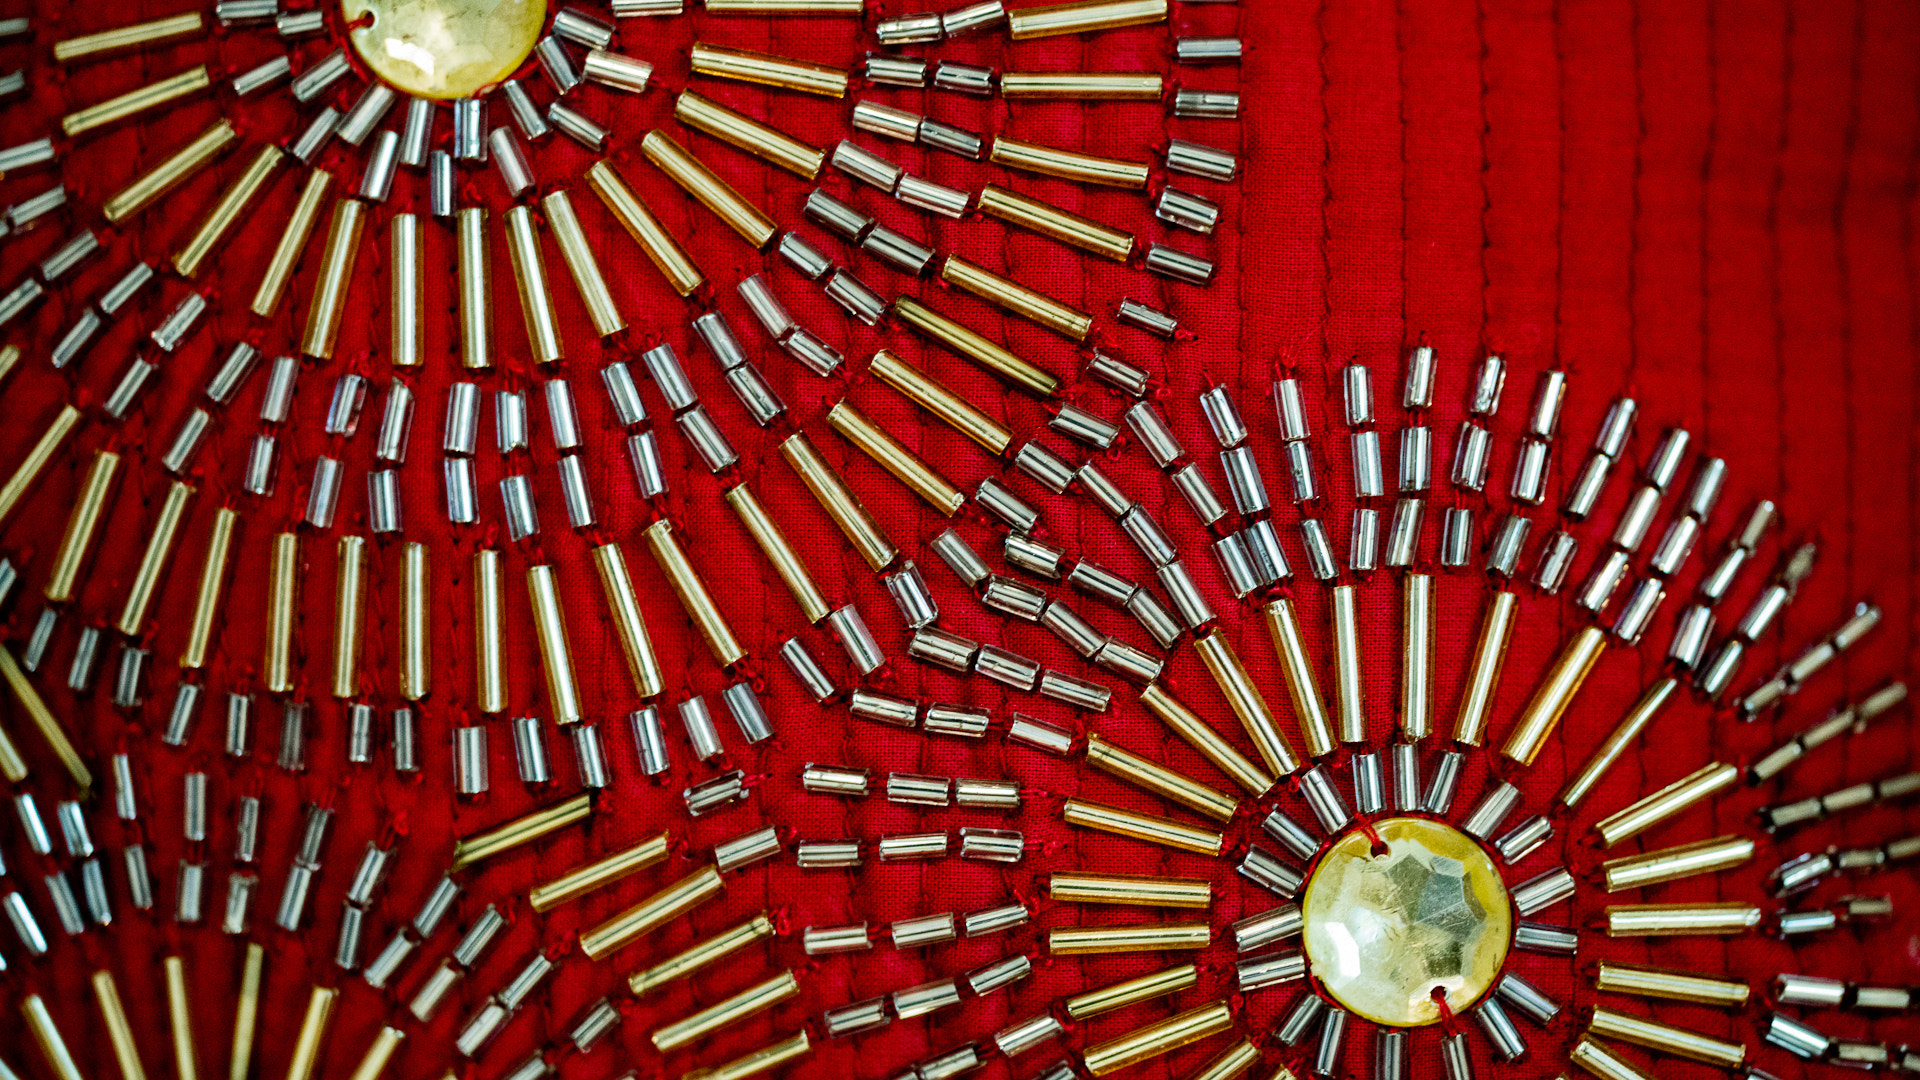 Photograph Beads - 2 by Abishek Murali Mohan on 500px